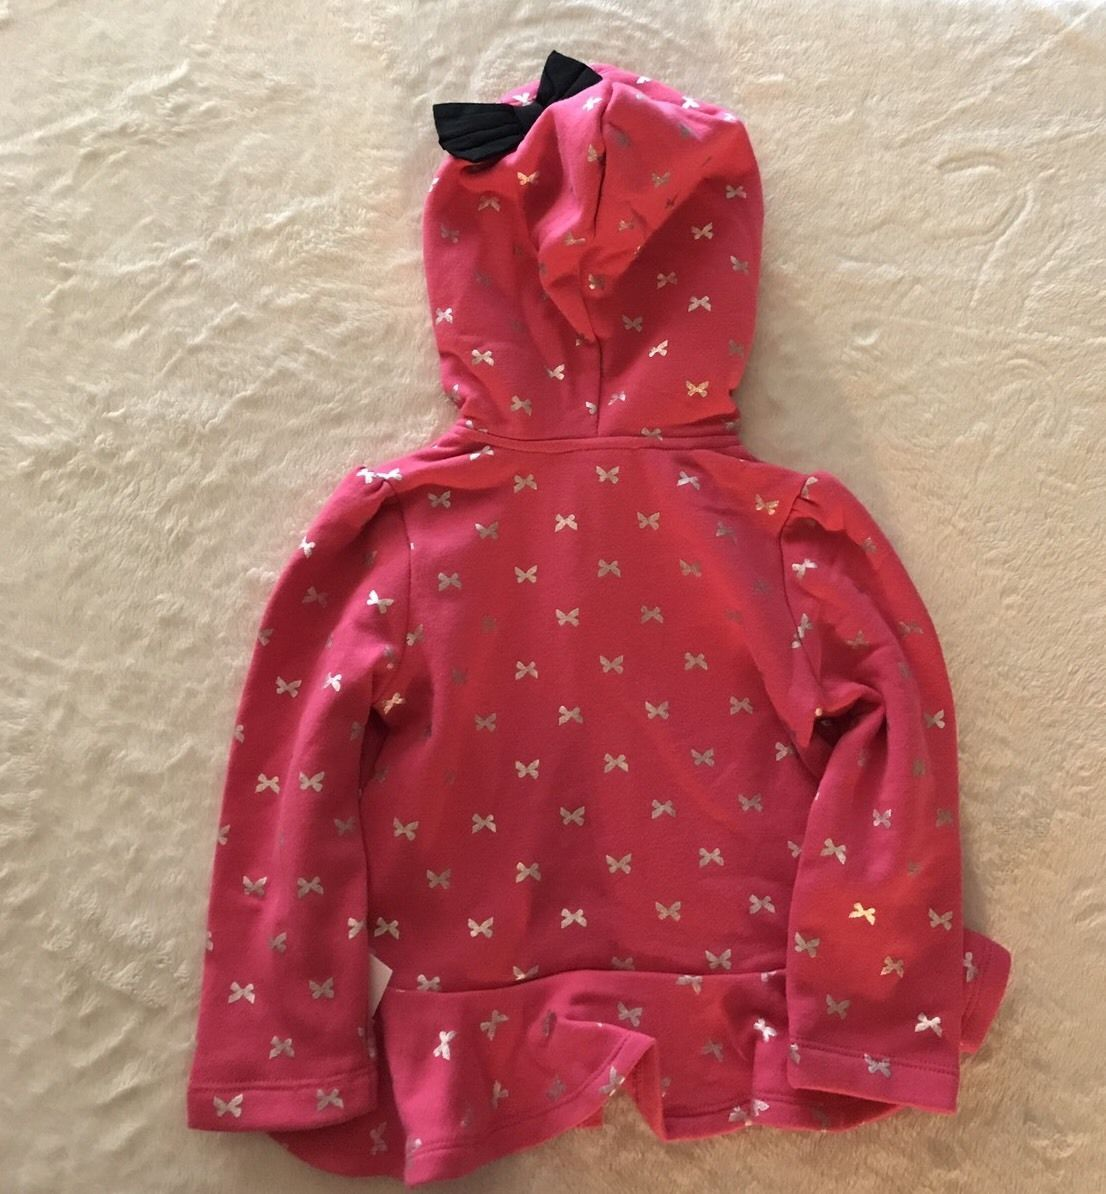 Kid's Disney Collection Jacket, Size 3T, Minnie Mouse, NWT